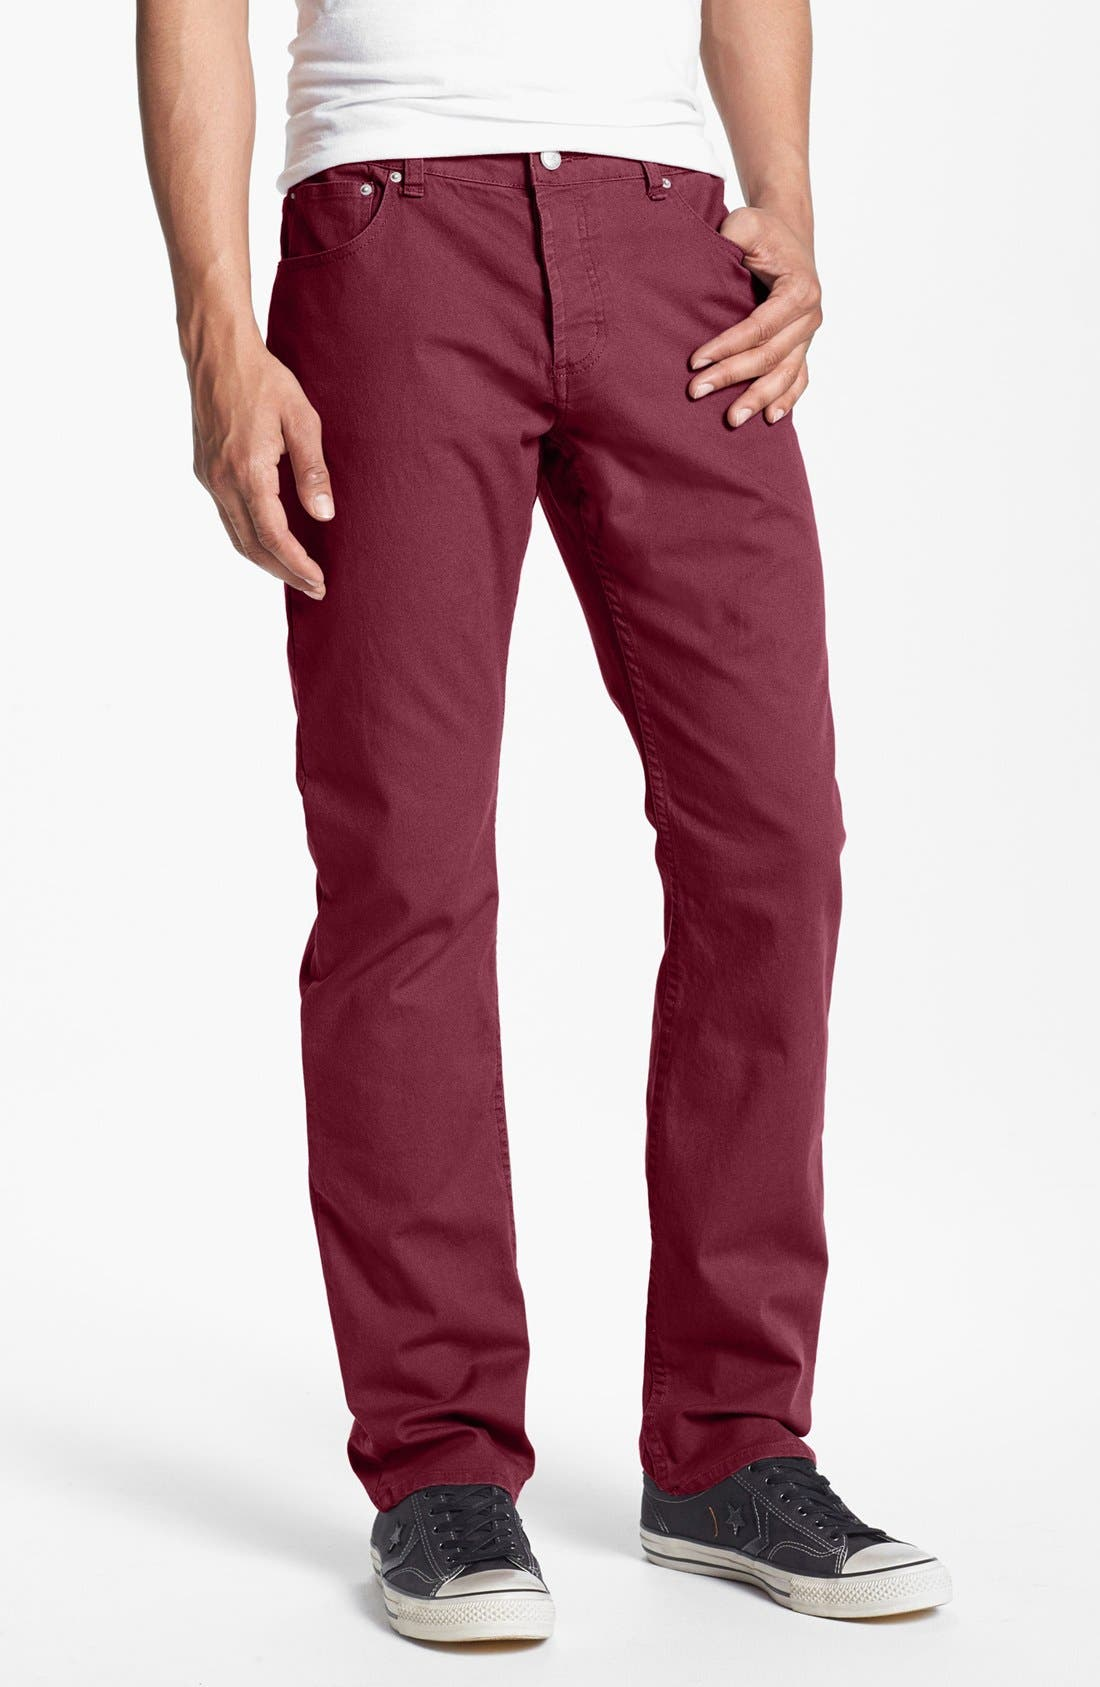 Alternate Image 1 Selected - Obey 'New Threat' Slim Fit Canvas Pants